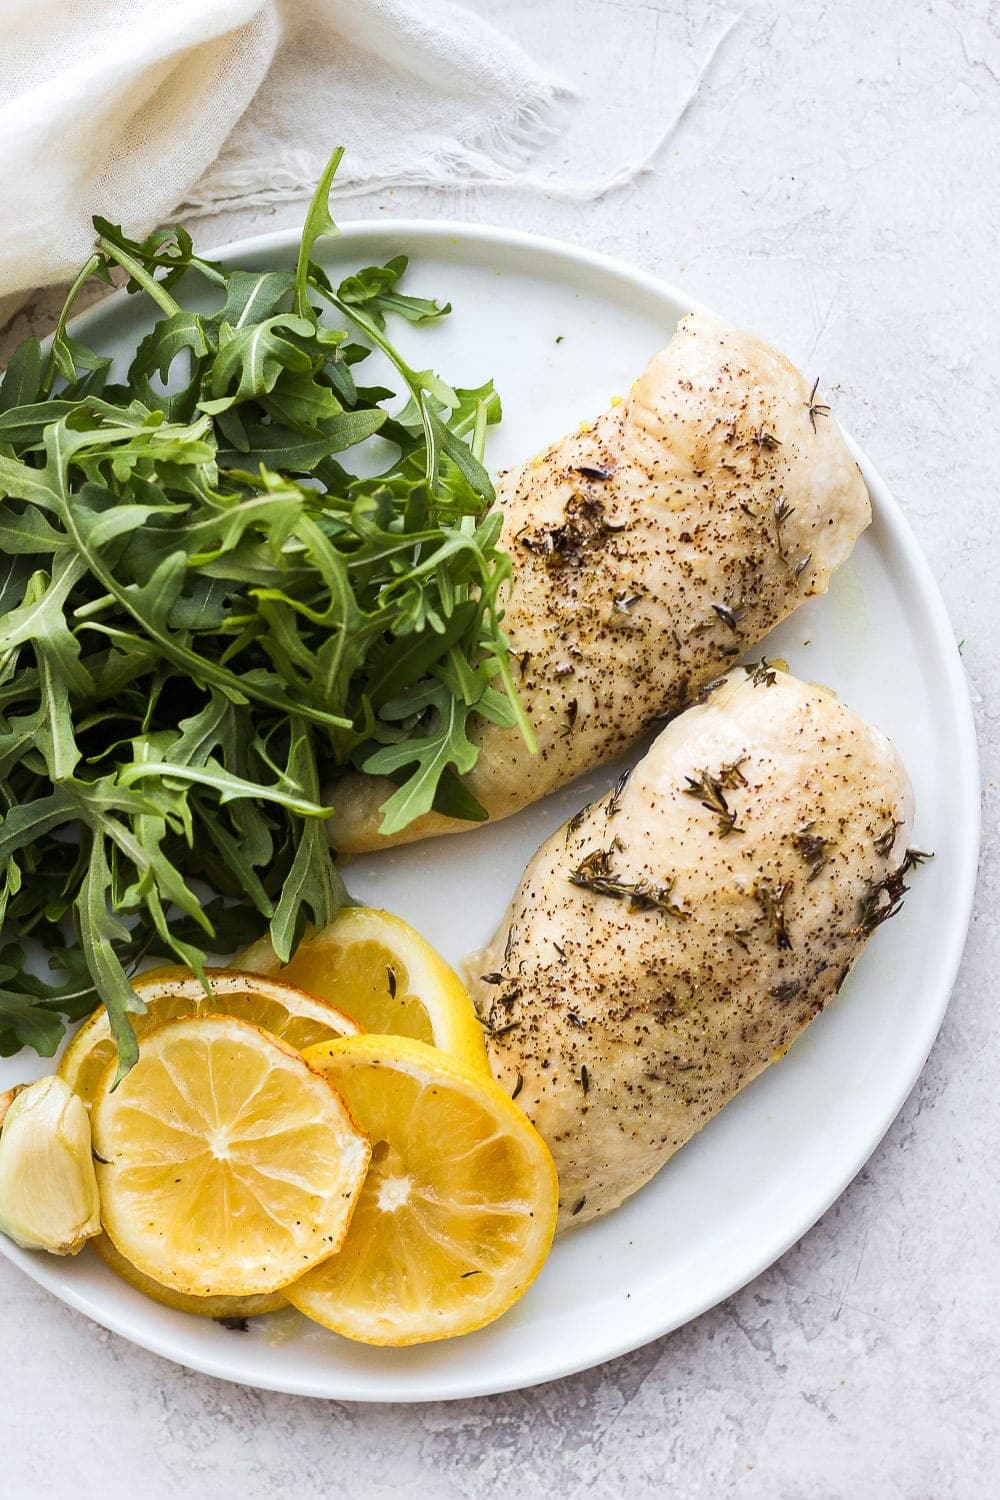 Baked lemon chicken breast on a plate.